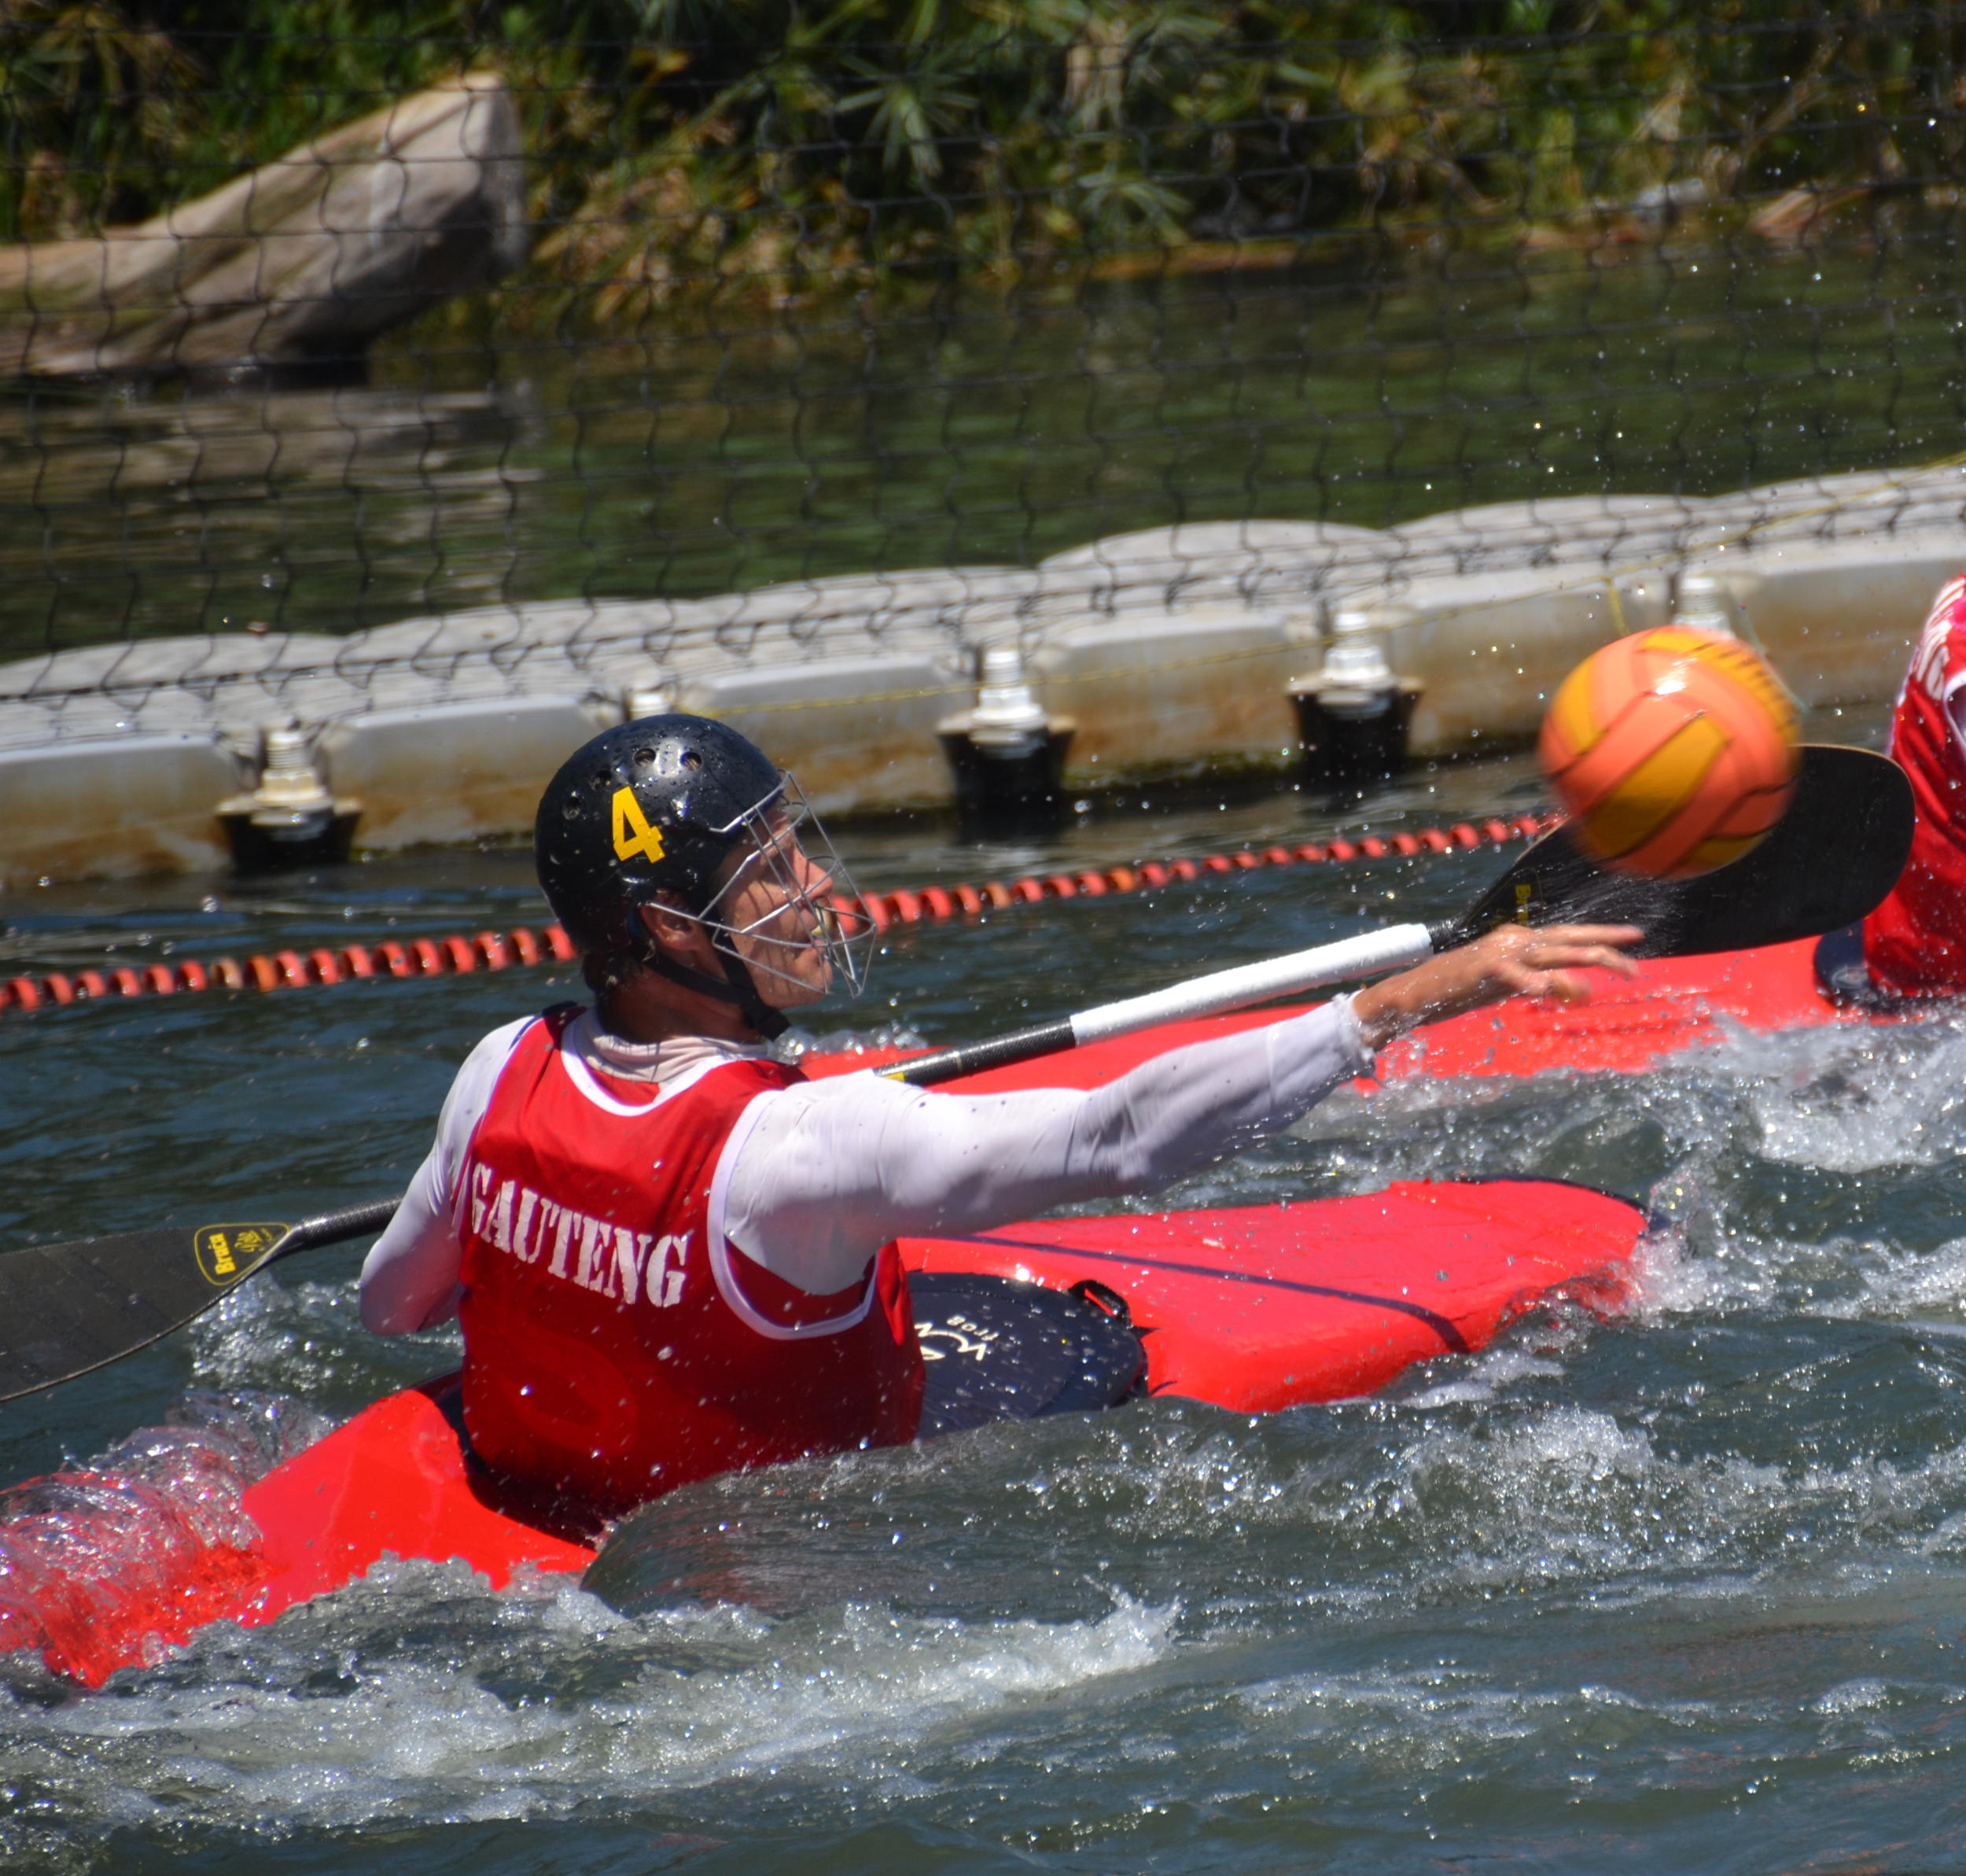 The South African Canoe Polo Championships will be taking place at Shongweni Dam just outside Hillcrest this weekend and promises to be an action-packed event from Saturday 16 to Sunday 17 April. Jane Ballot/Gameplan Media